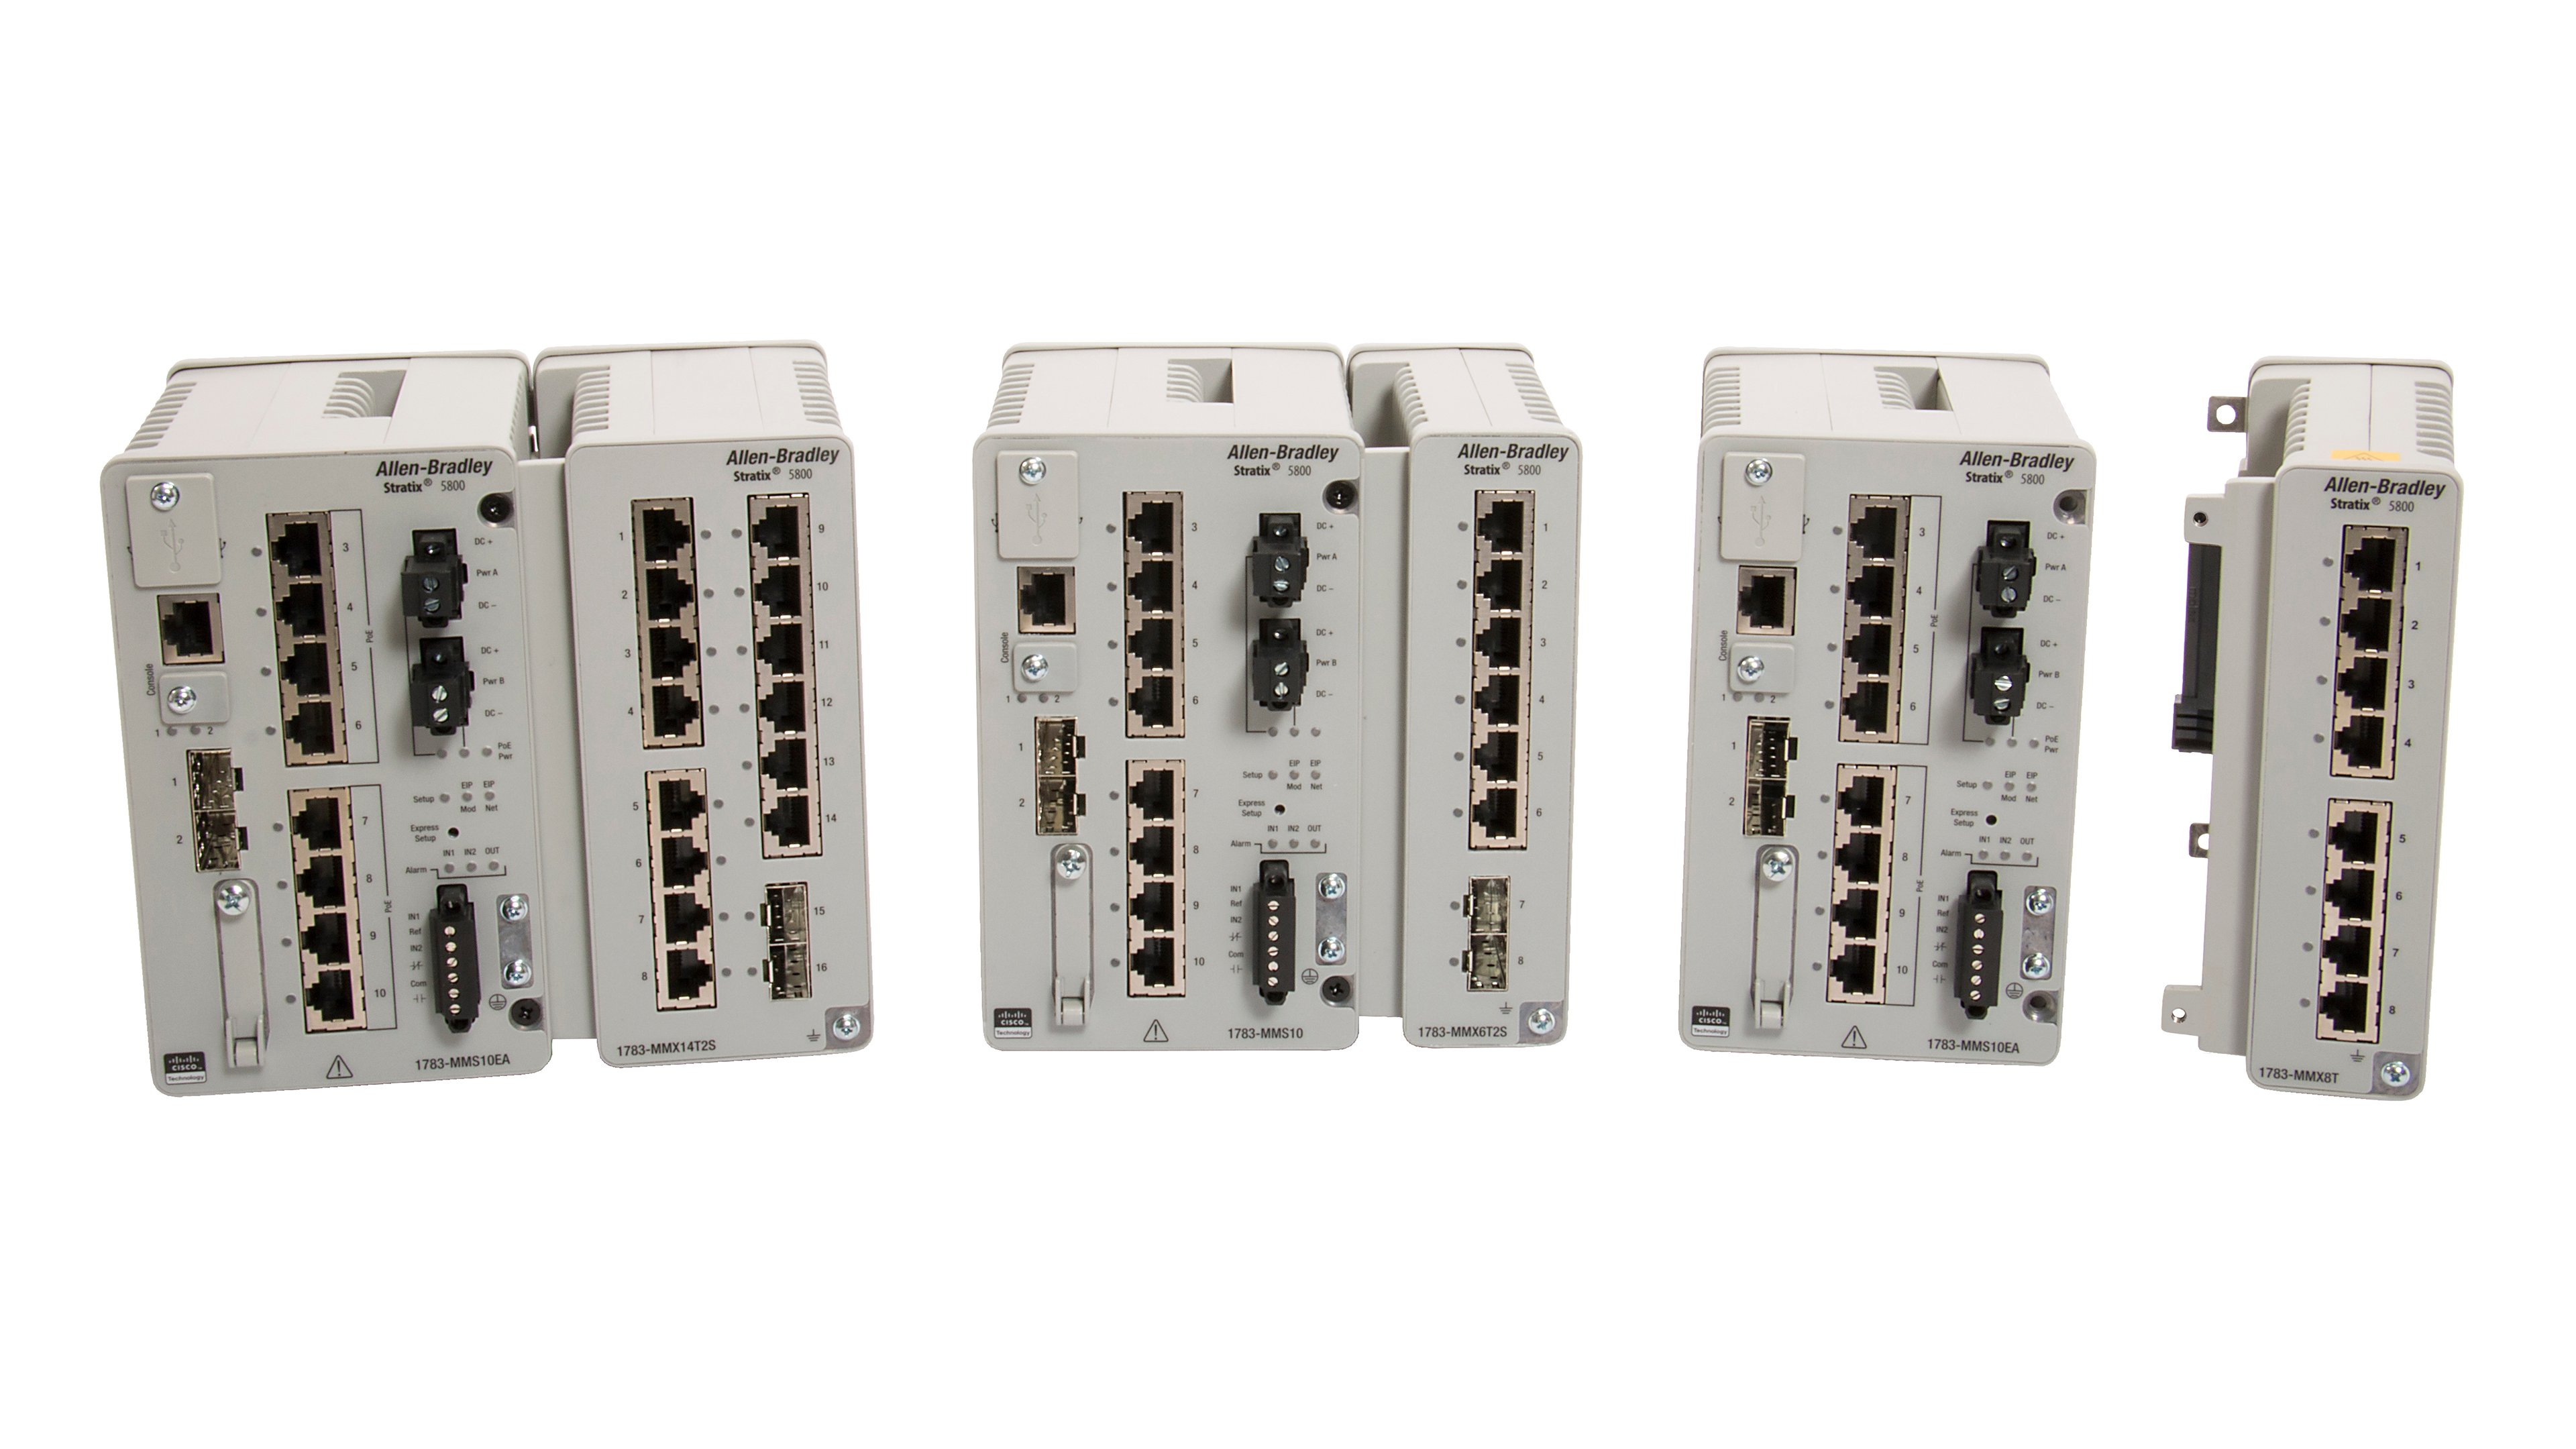 Shows front view of Stratix 5800 switch with expansion module attached for first and second image. The third image shows front view of Stratix 5800 switch separately. The fourth image shows front view of an expansion module separately.